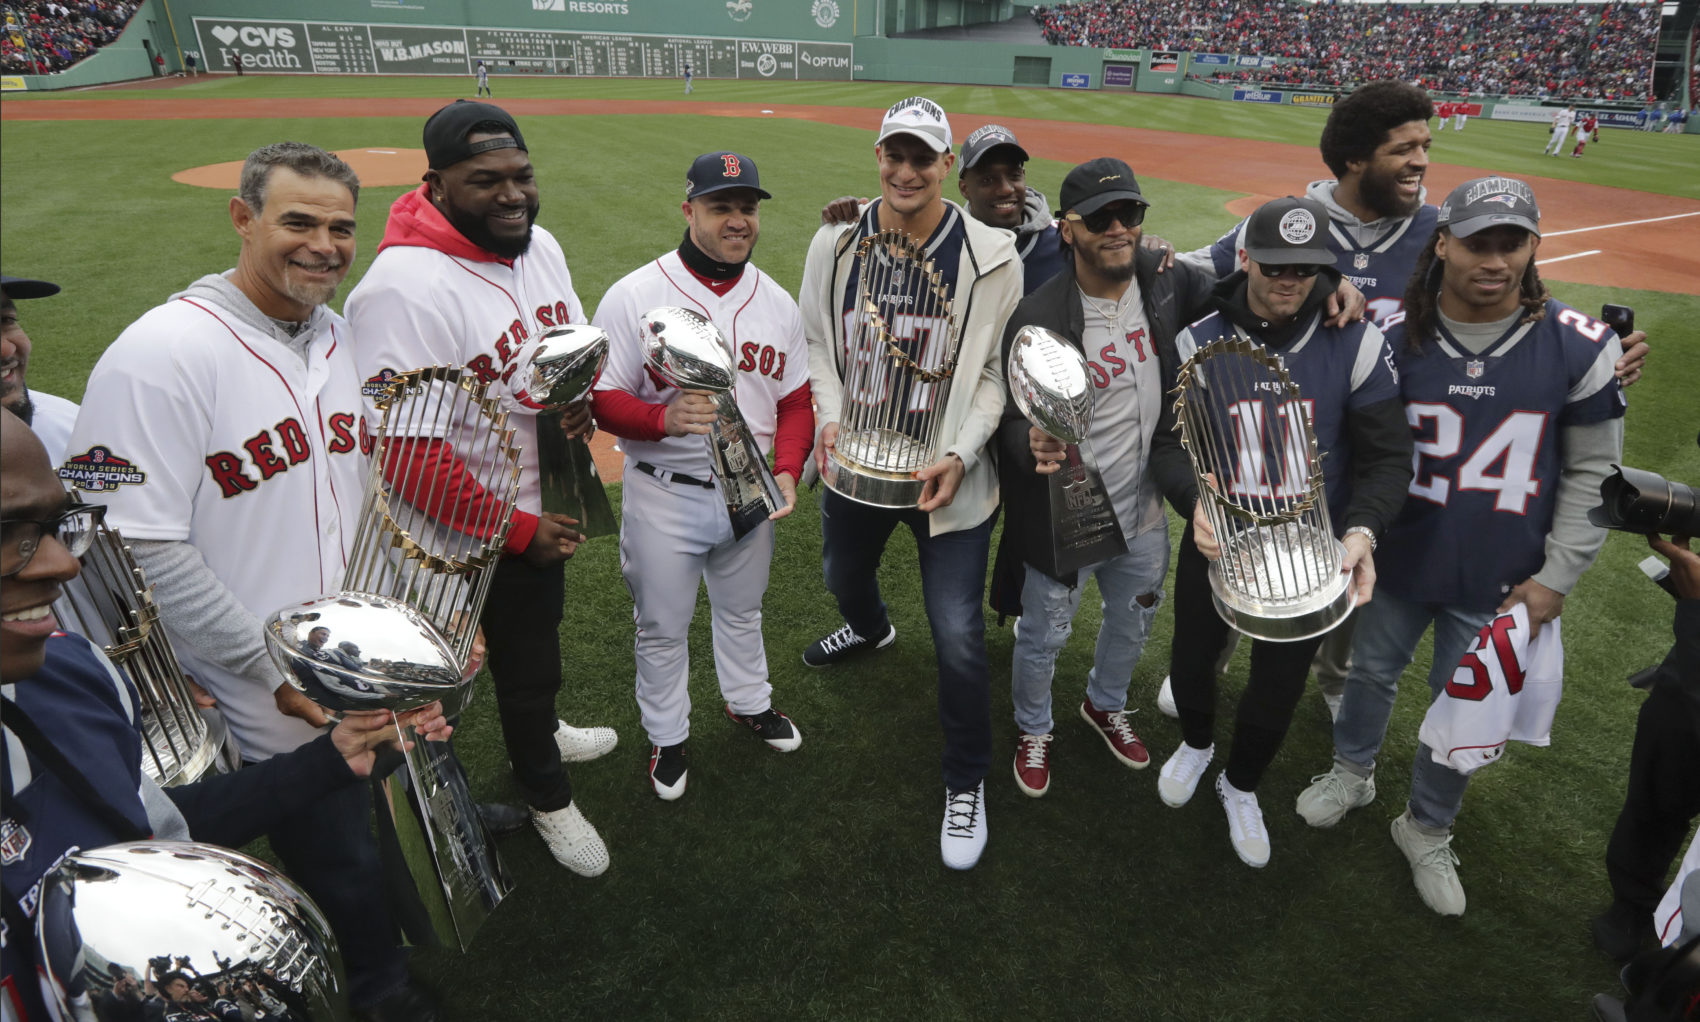 2f2c32bbf Patriots and Red Sox players hold Super Bowl and World Series trophies.  From left they